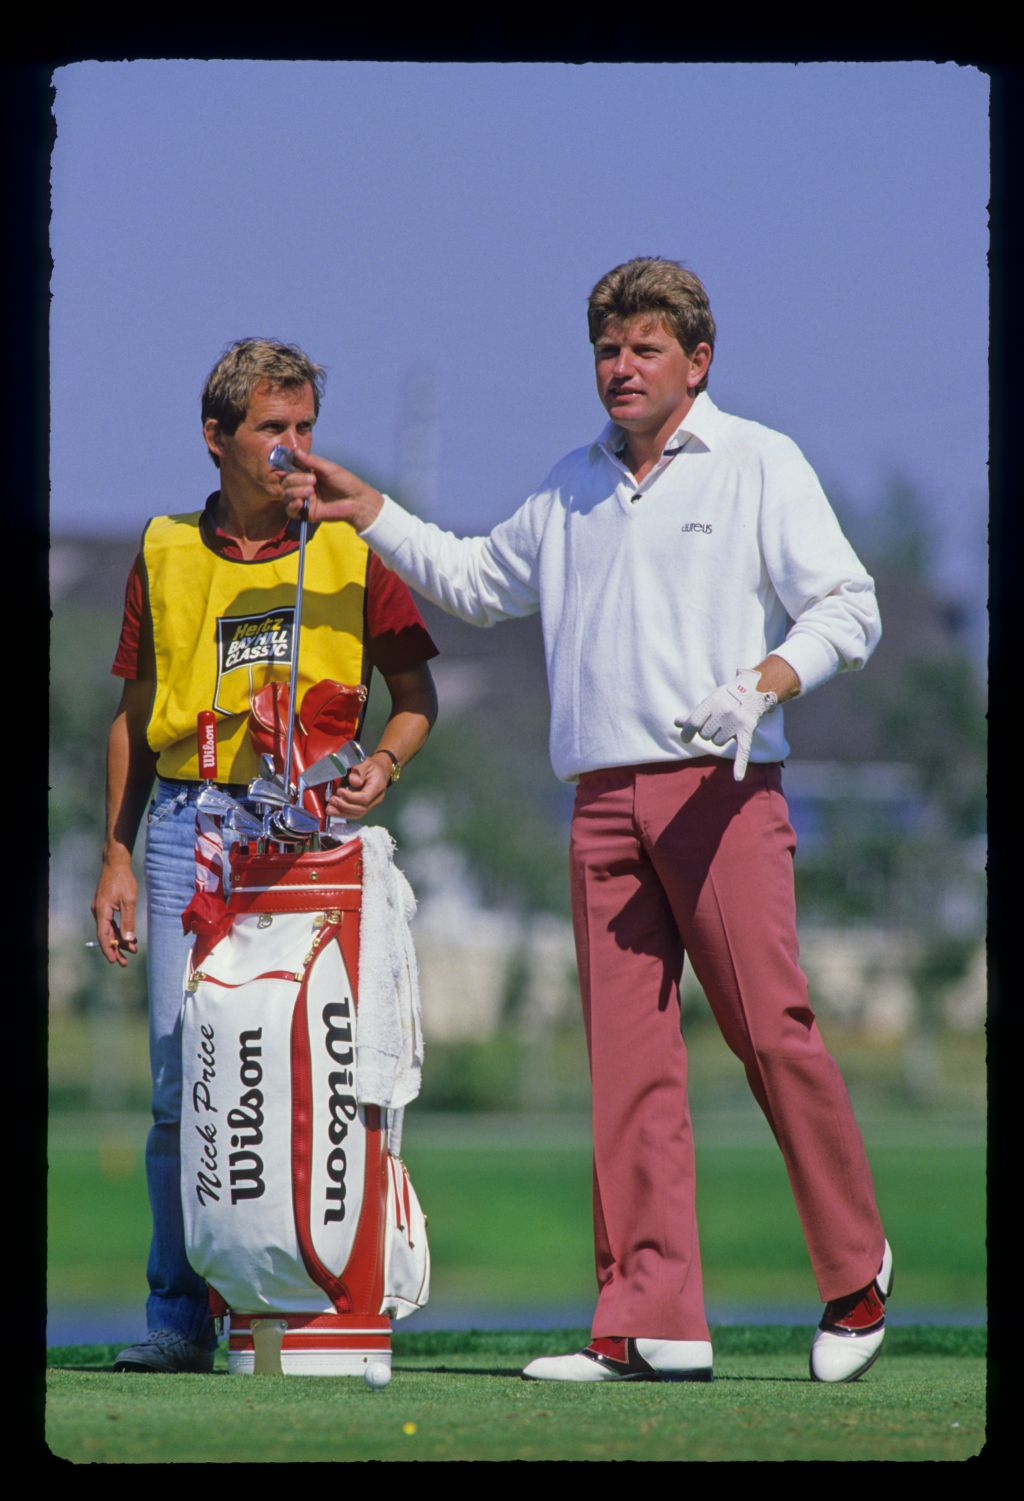 Nick Price and his caddie making their club selection on the tee during the 1987 Hertz Bay Hill Classic